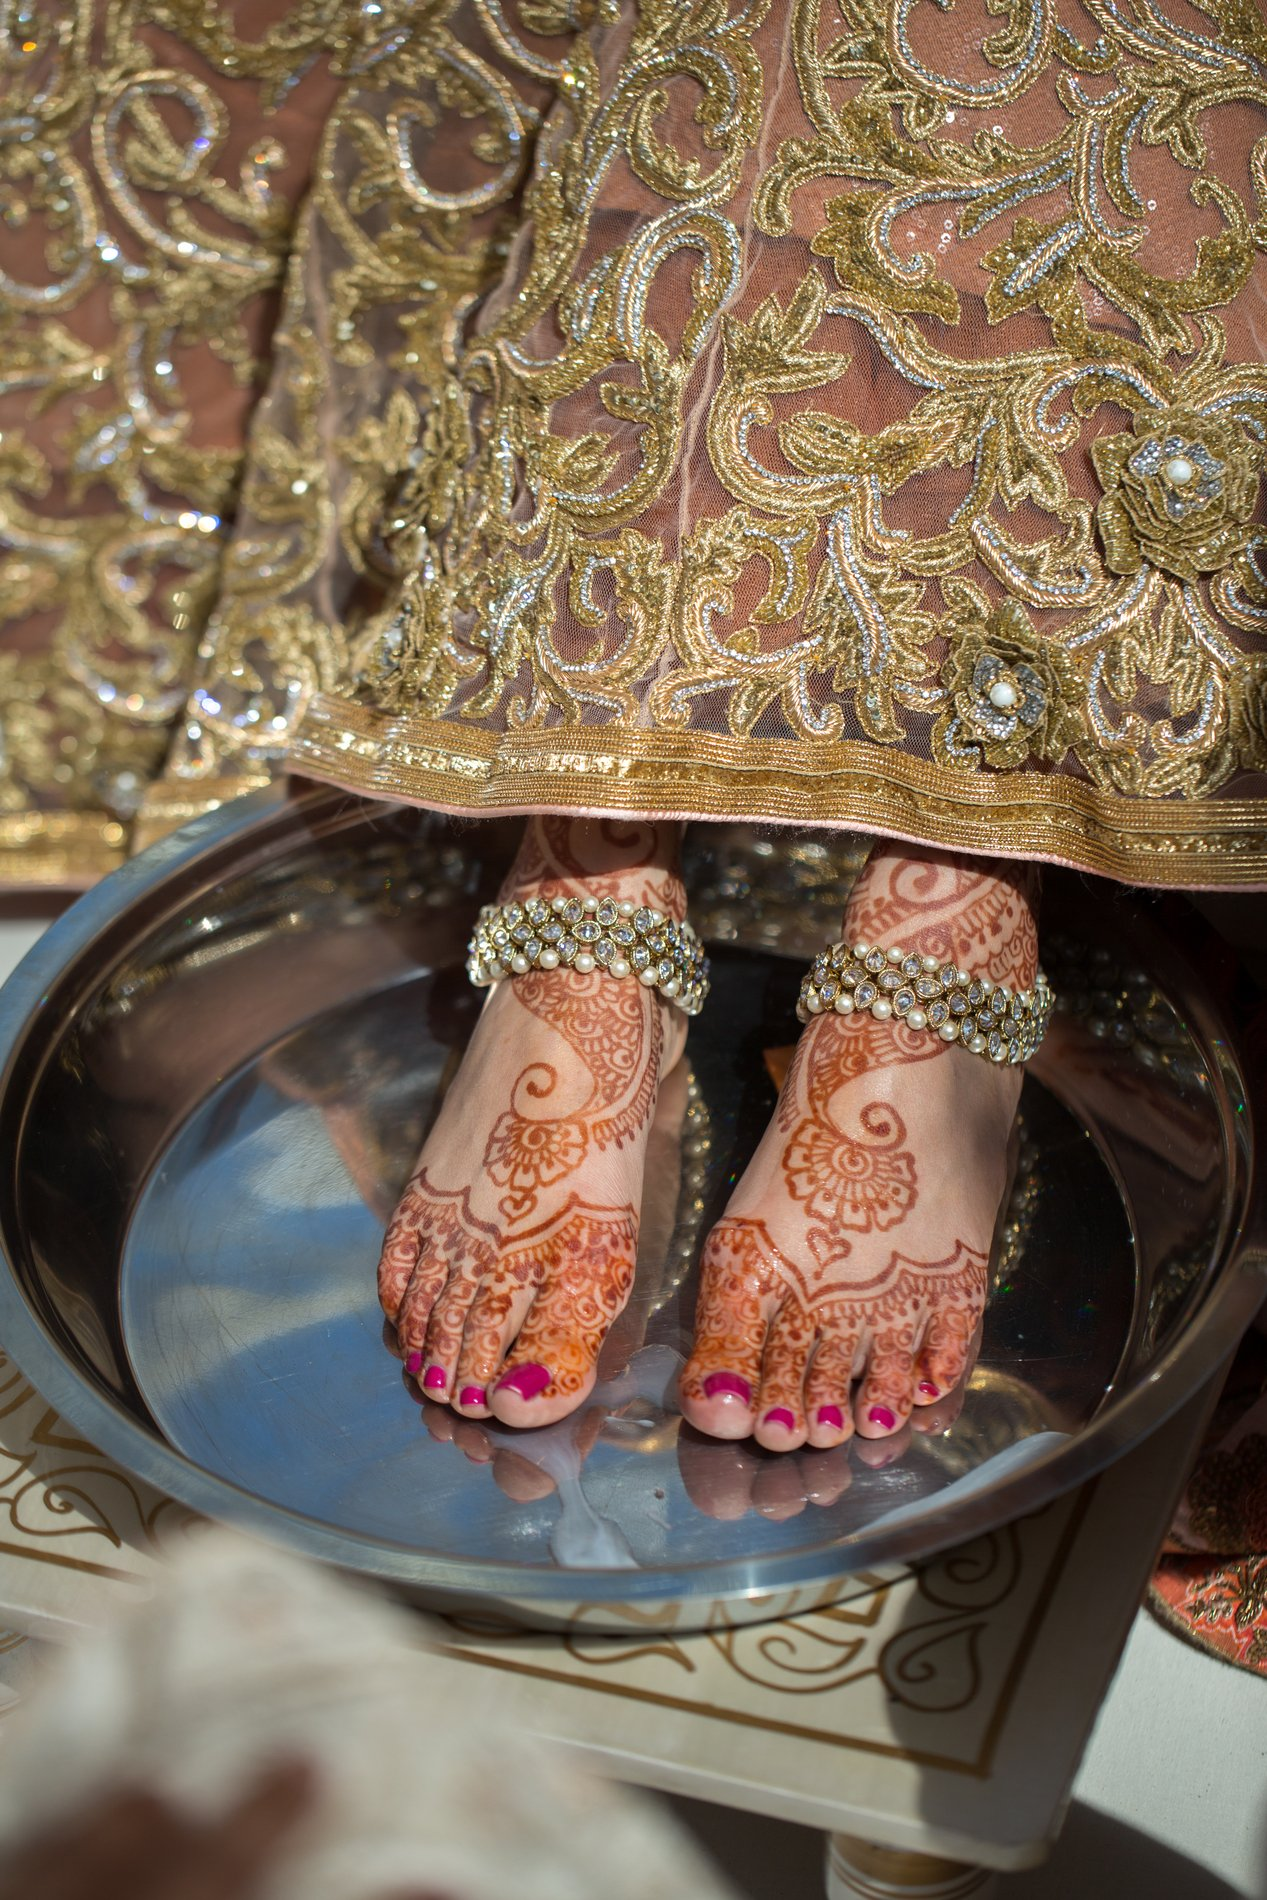 Bridal Mehndi Ideas and Inspiration, Miami Wedding Photographers | Häring Photography, Indian Wedding Photographer in Florida, Best Muslim, Hindu - South East Asian Wedding Photographers